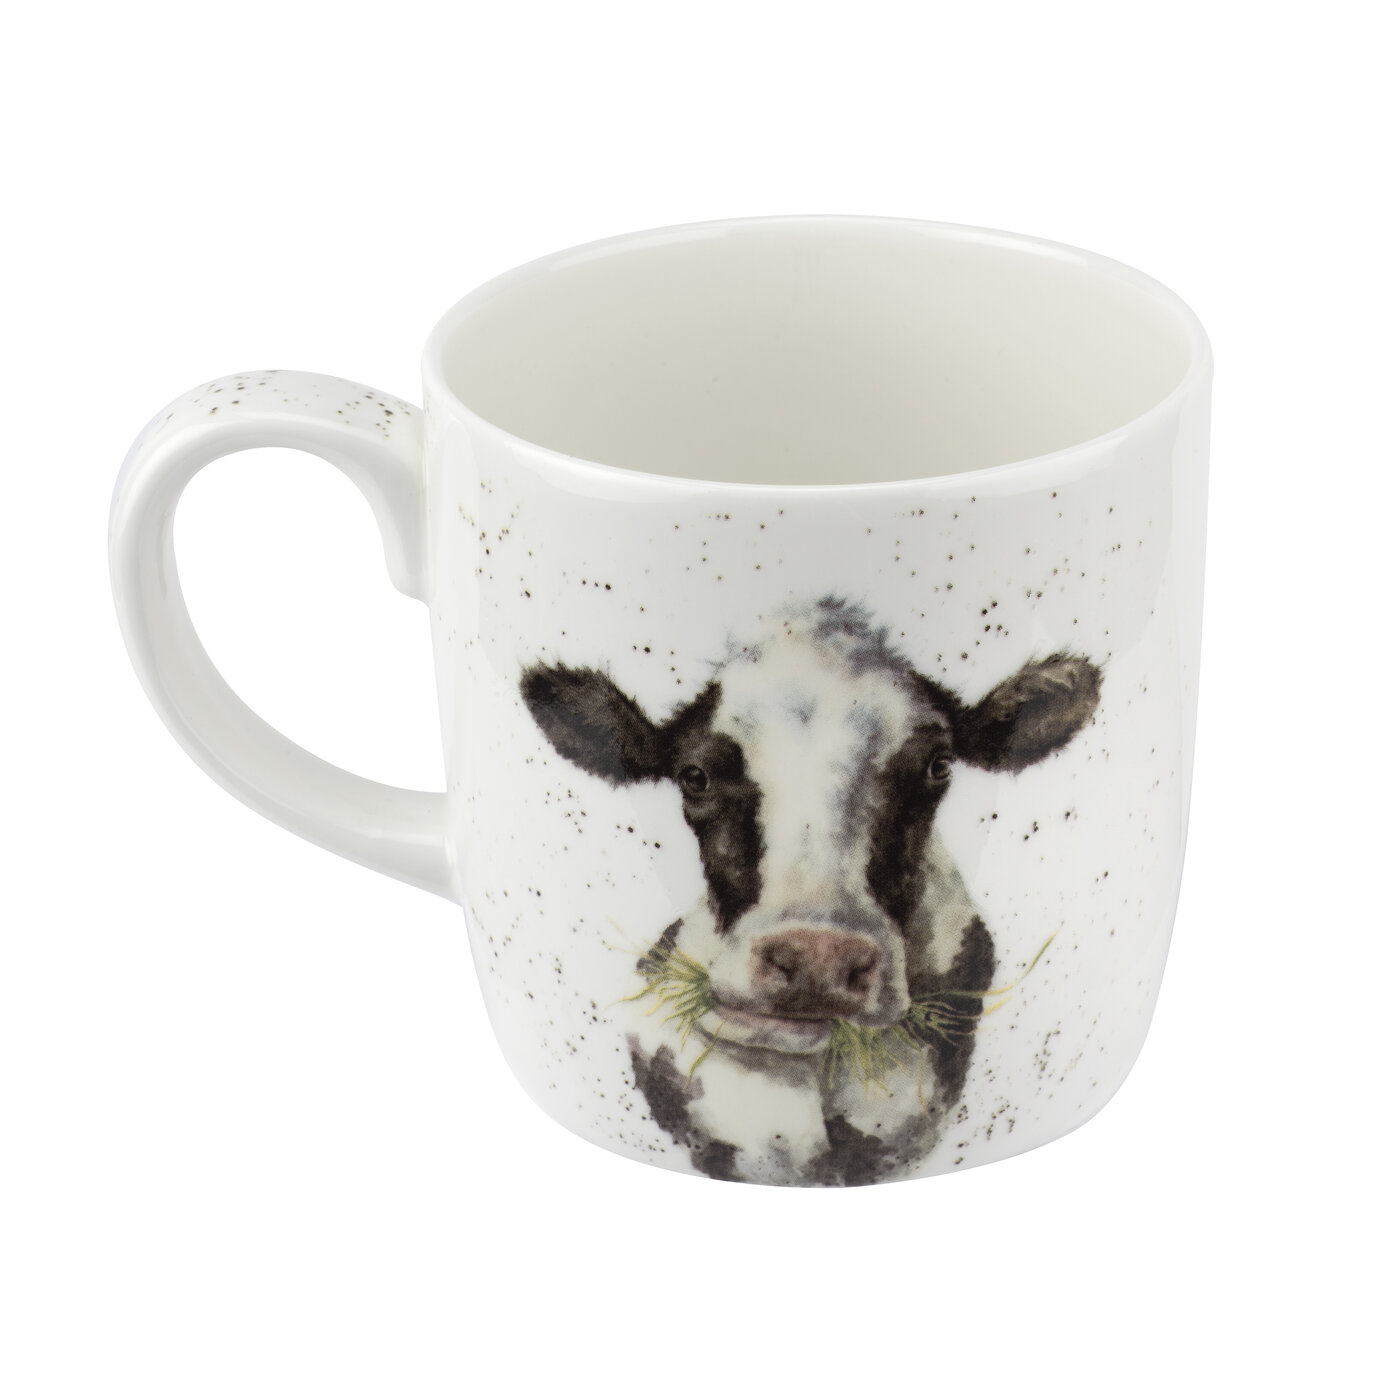 Wrendale Designs 14 Ounce Mug Mooo (Cow) image number 1